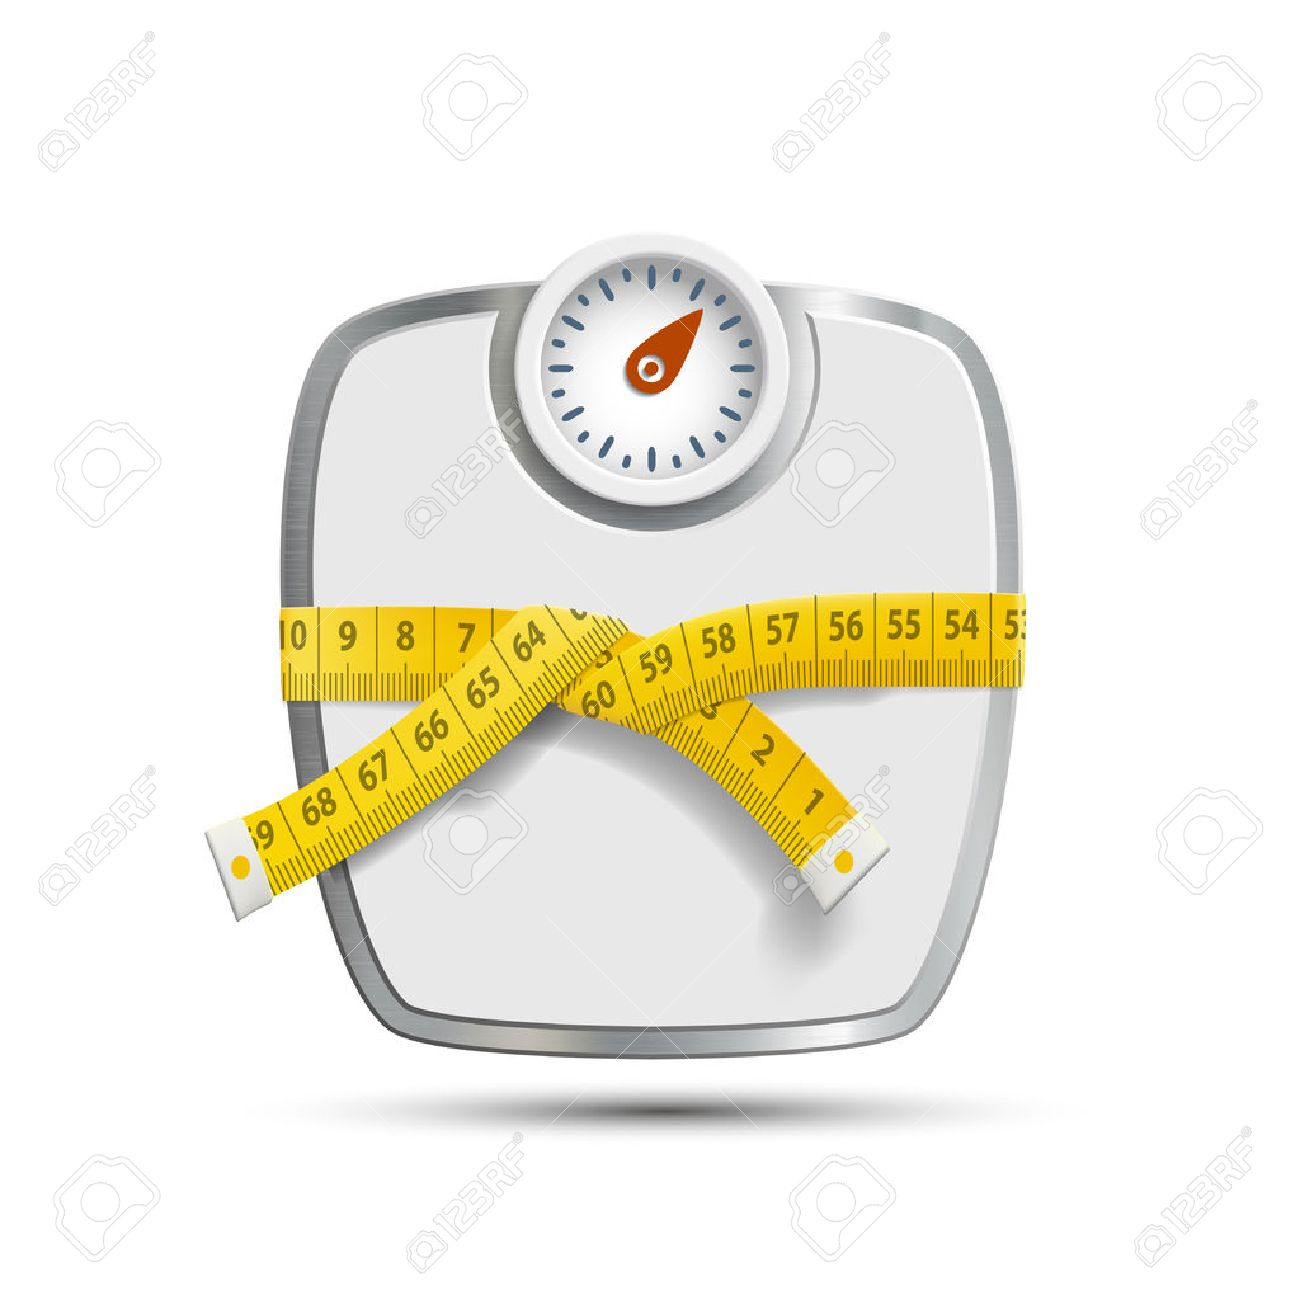 Scales for weighing with the measuring tape. Vector image. - 38492855